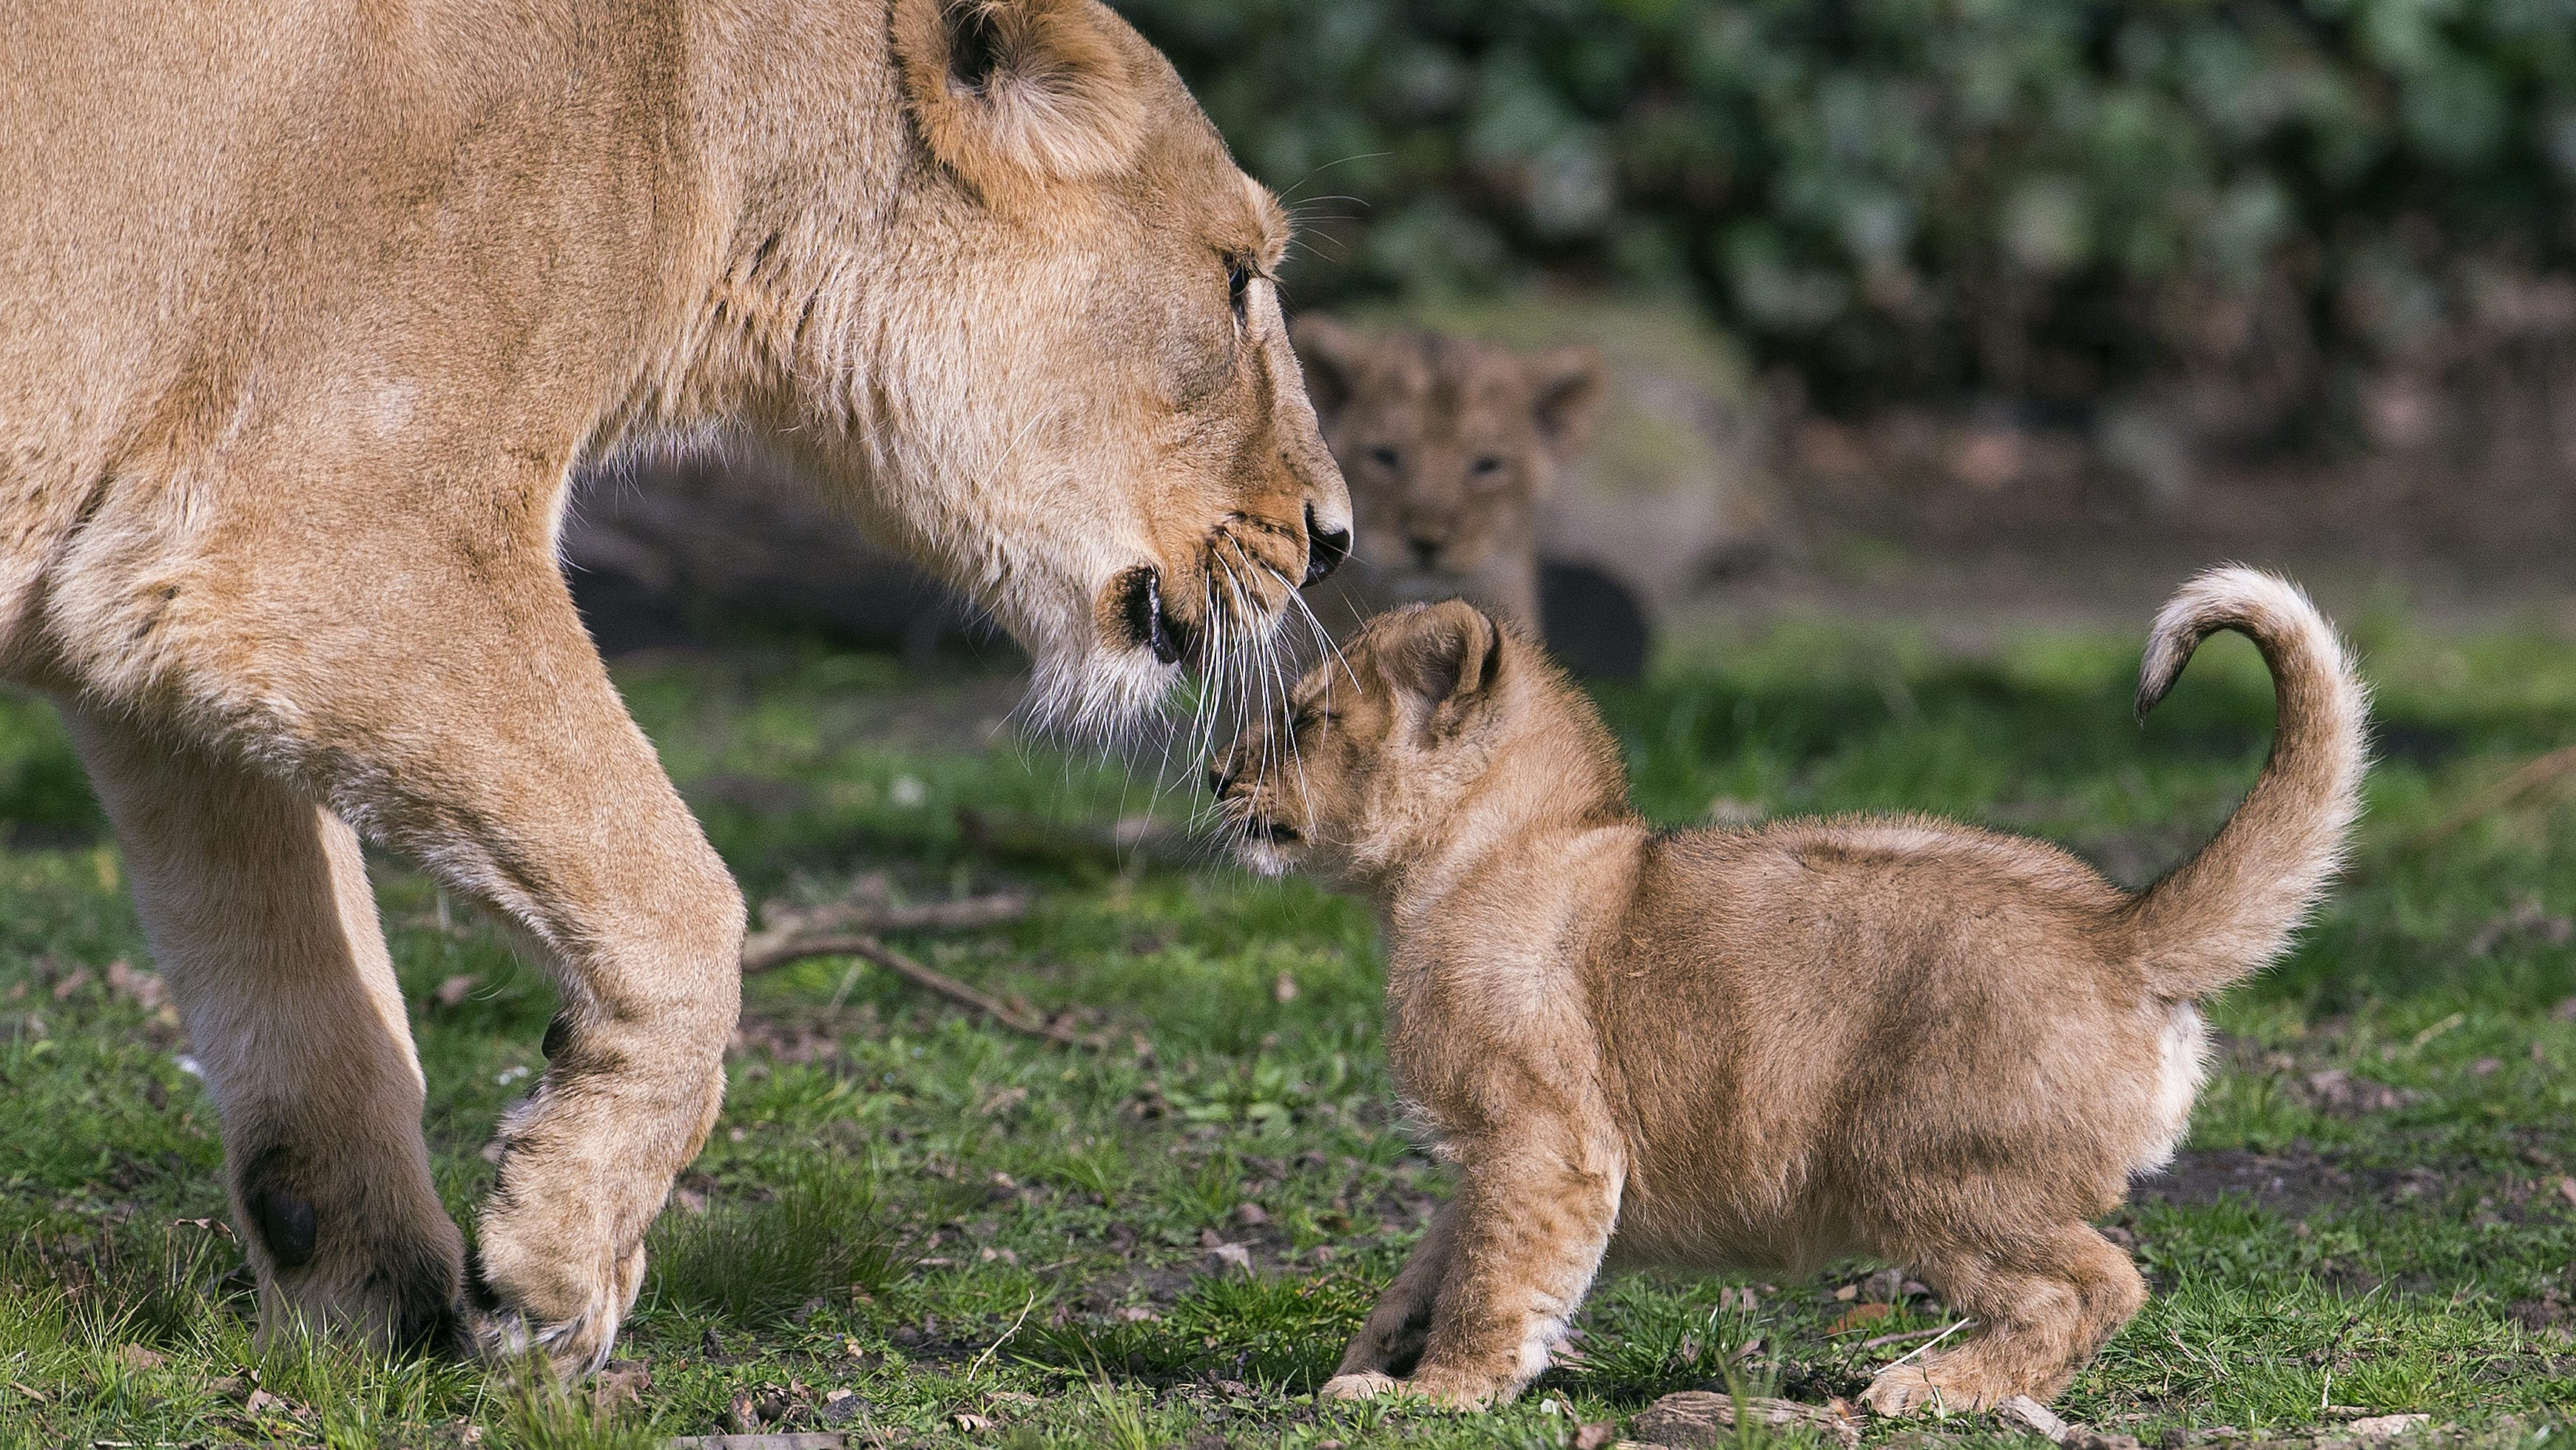 An Asian lion cub, born on January 25, 2016, plays with his mother Lorena while being presented to the public at the Planckendael Park in Mechelen